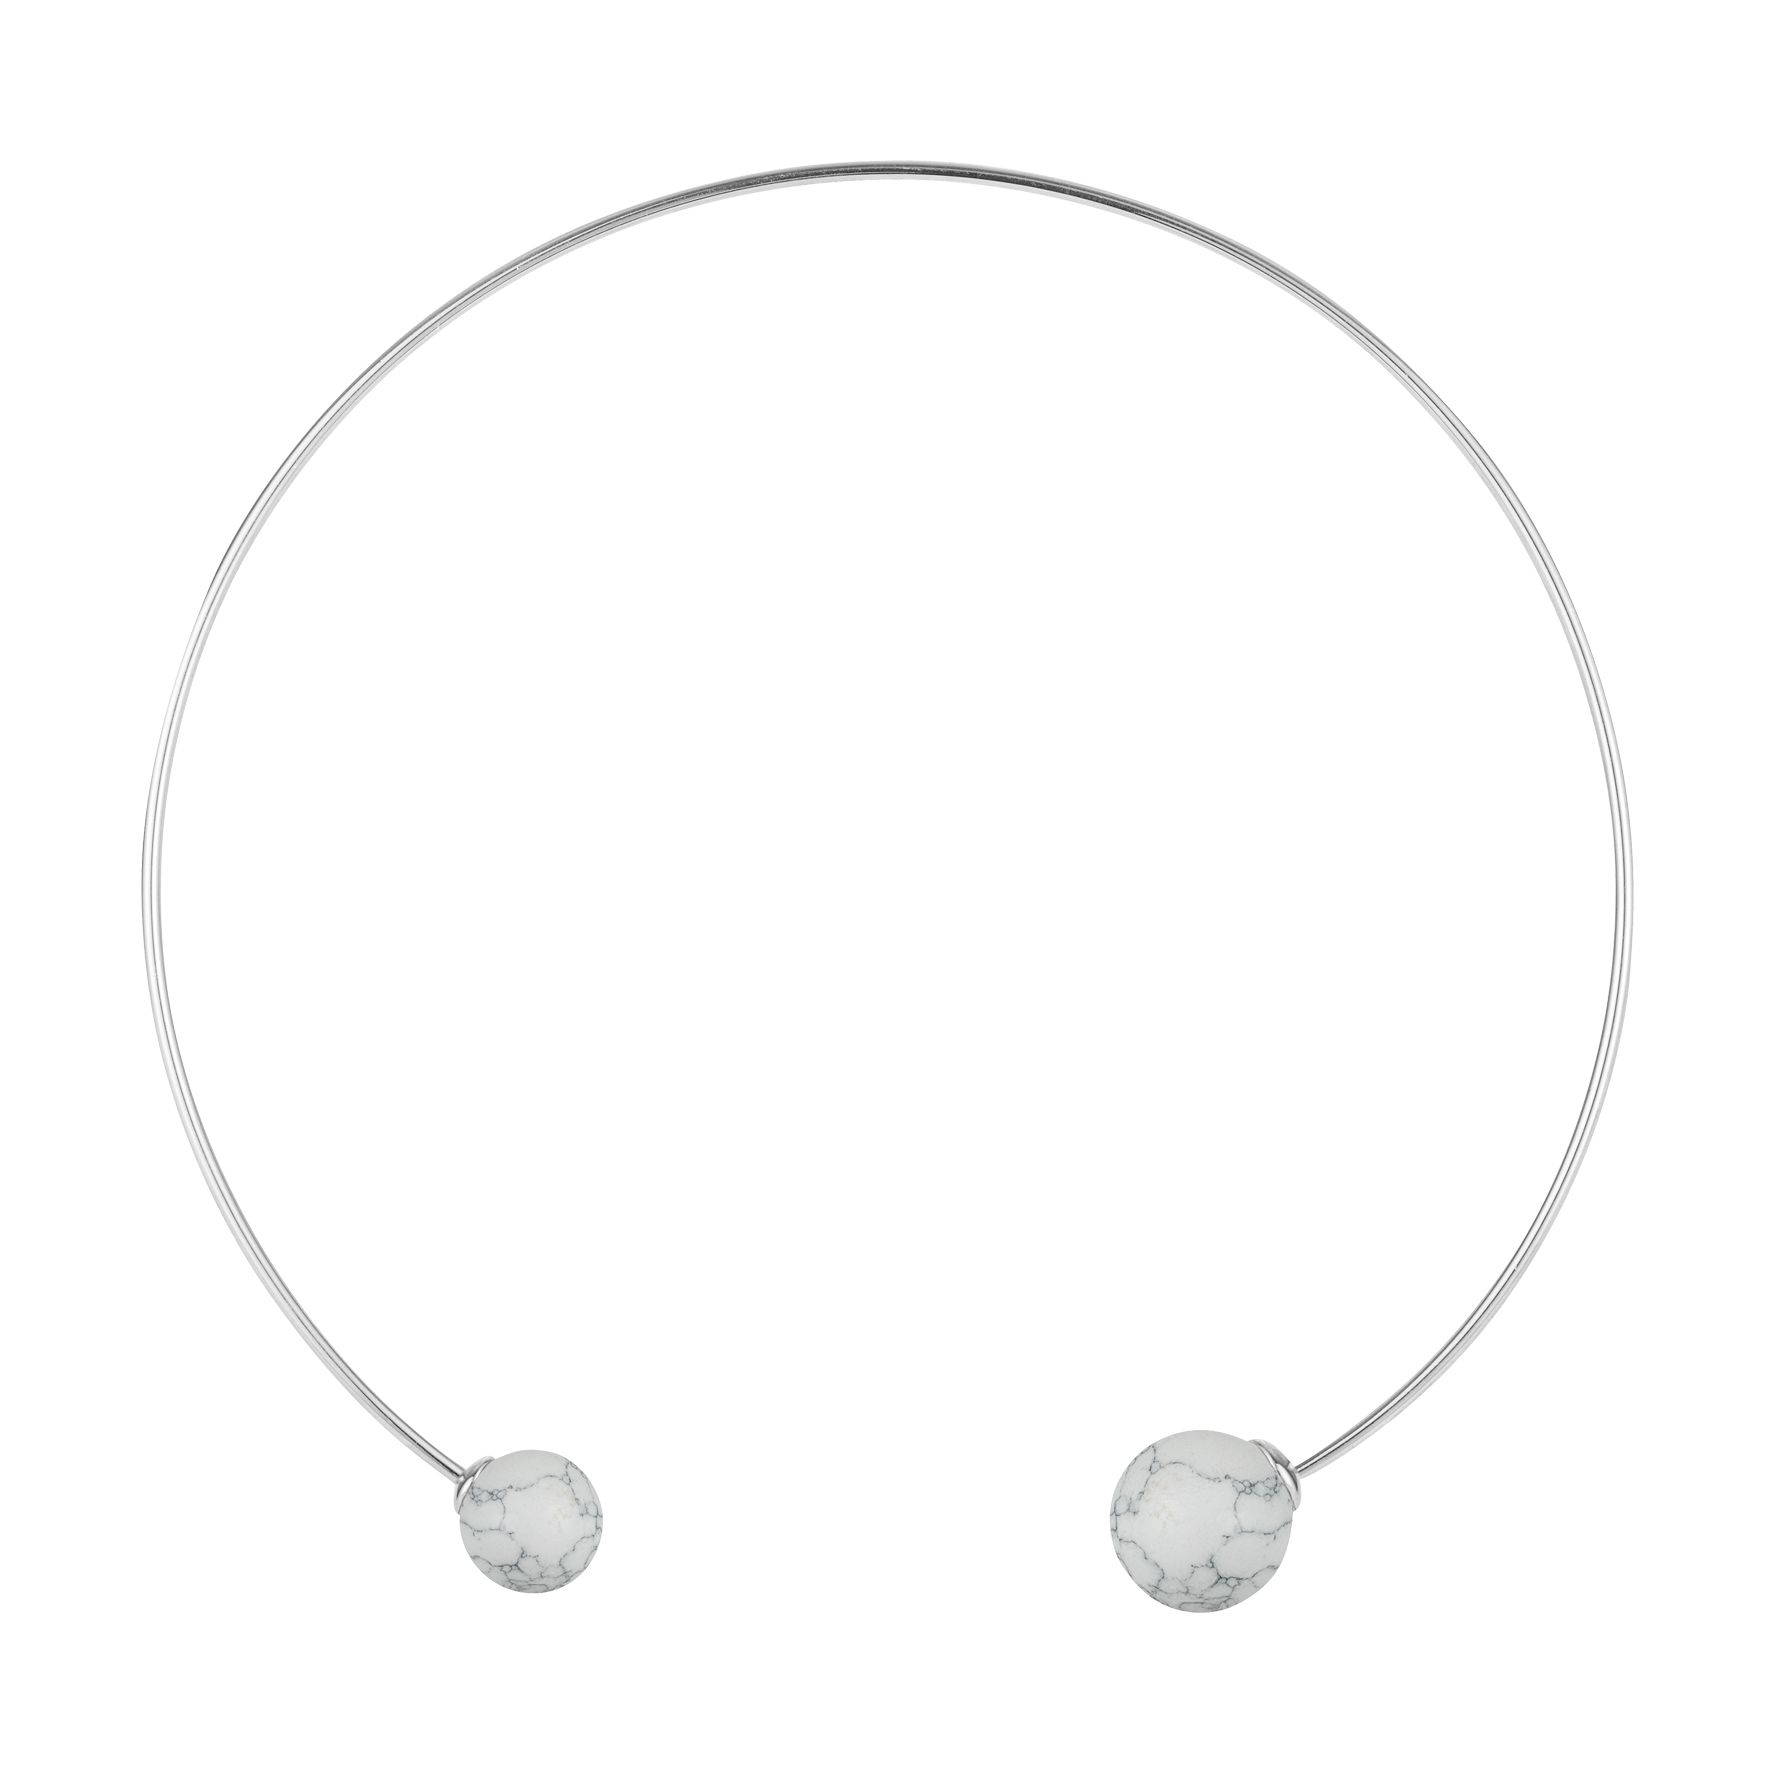 Hanna Choker in rhodium plated silver with howlite